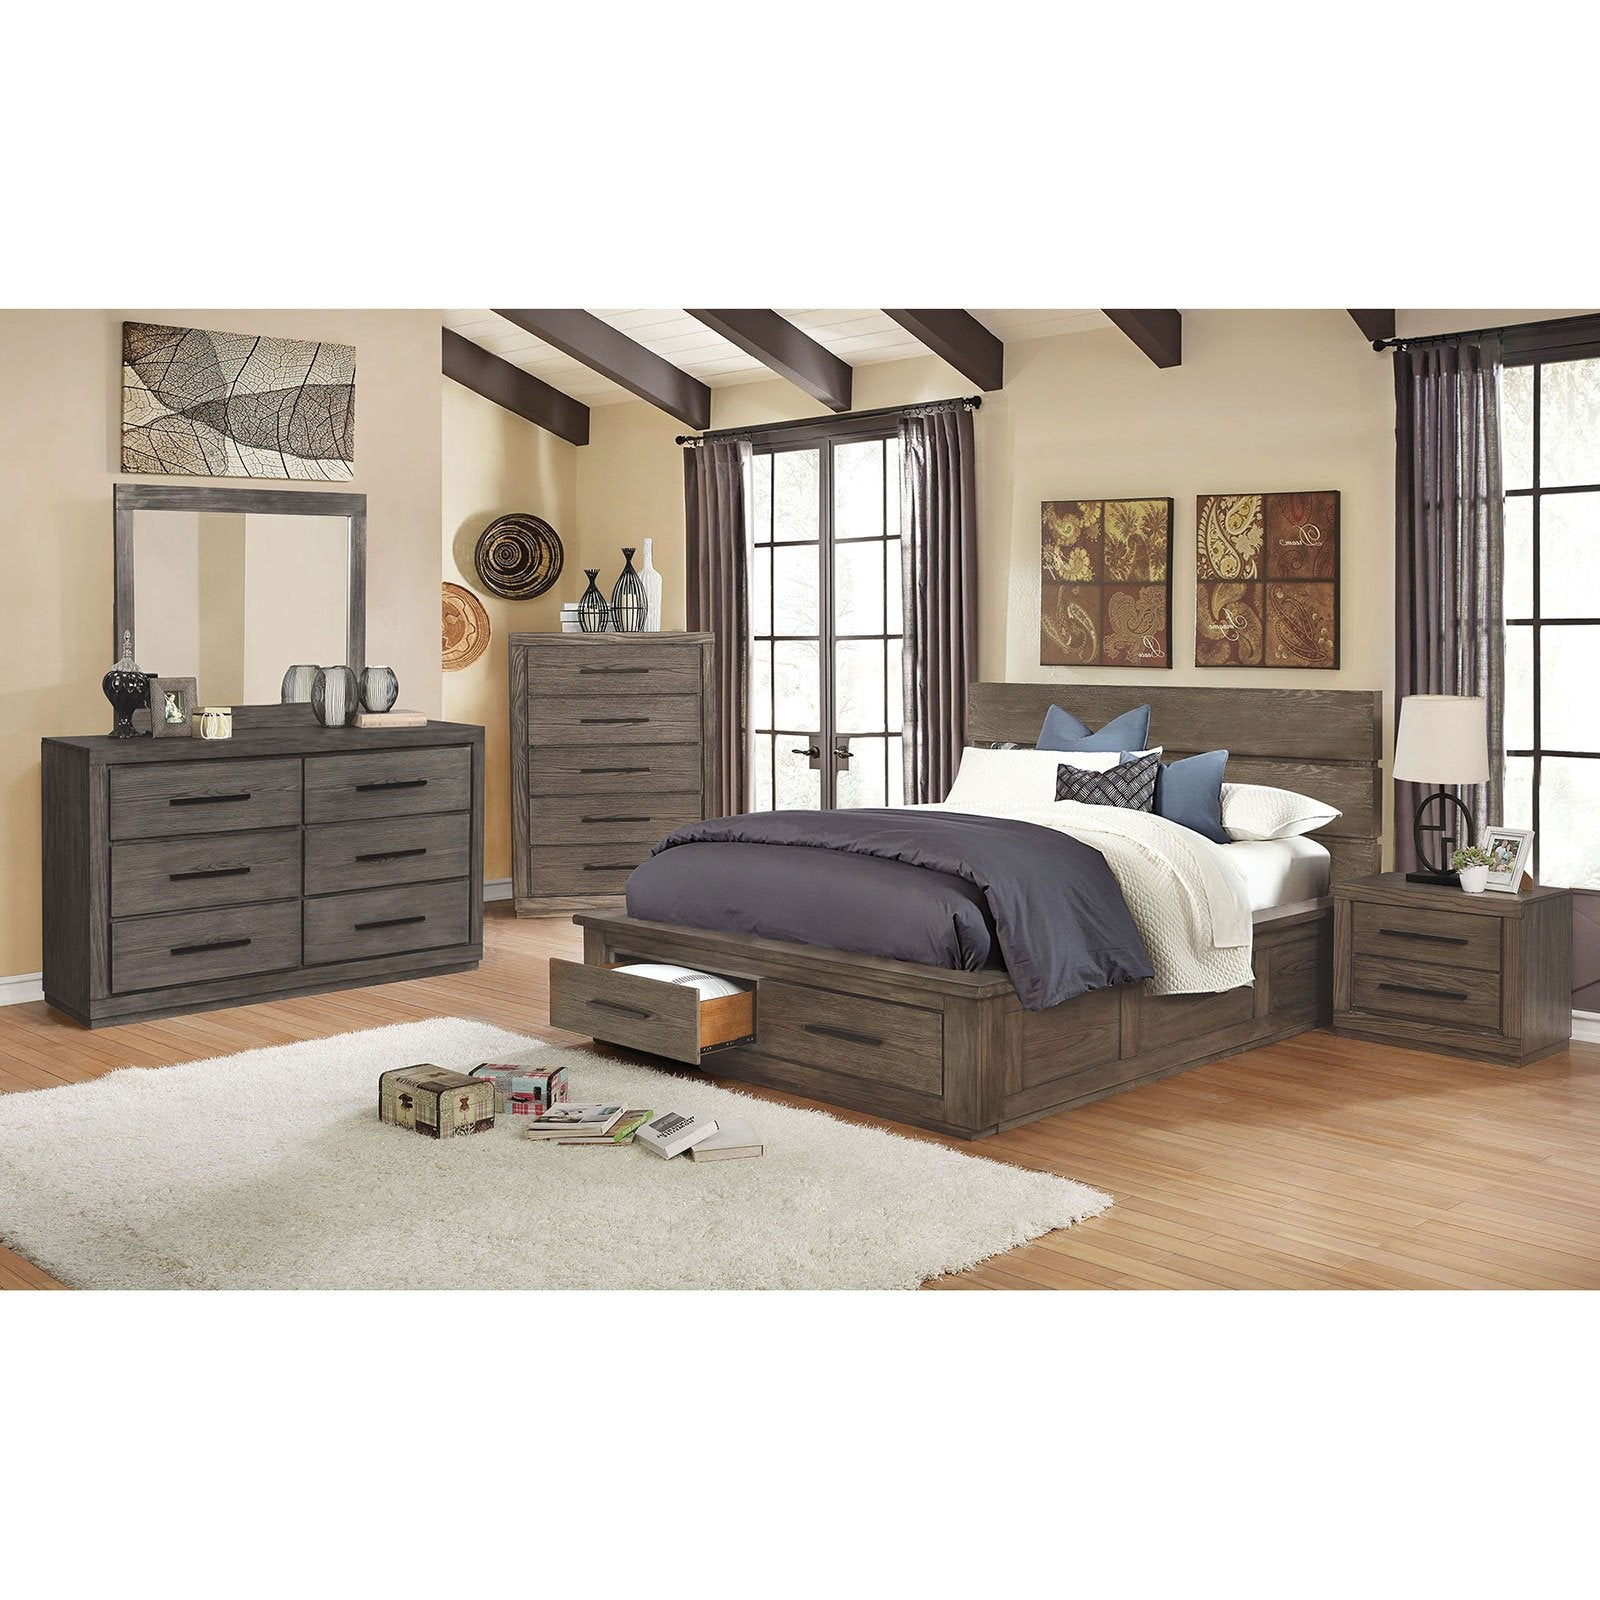 Oakburn Transitional 4 Pc. Queen Bedroom Set - InteriorDesignsToGo.com